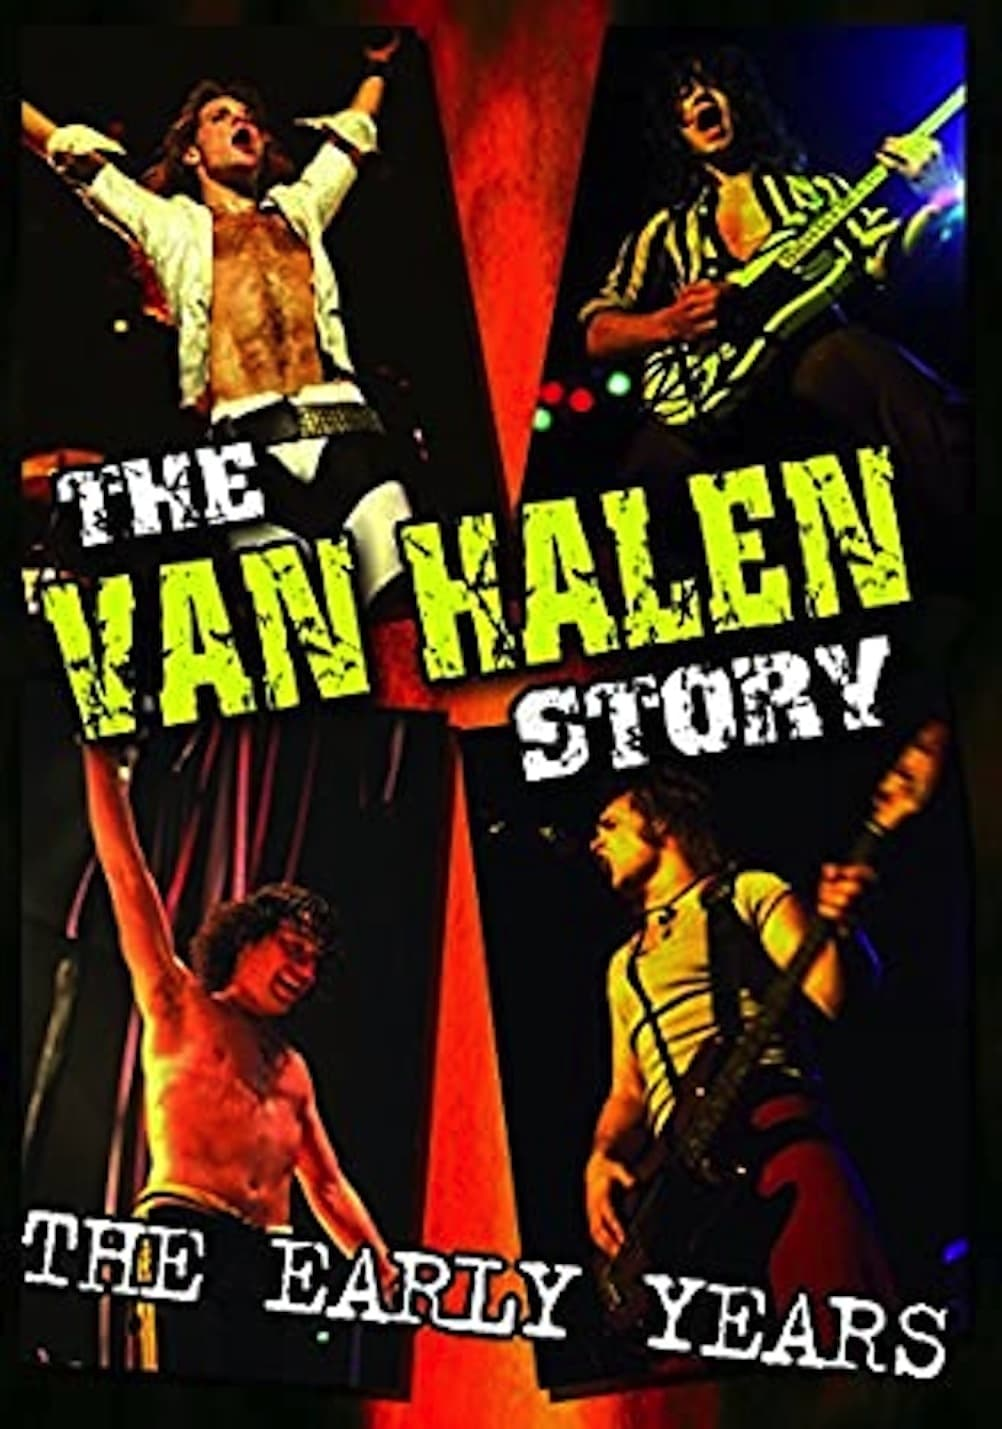 The Van Halen Story - The Early Years (2003)